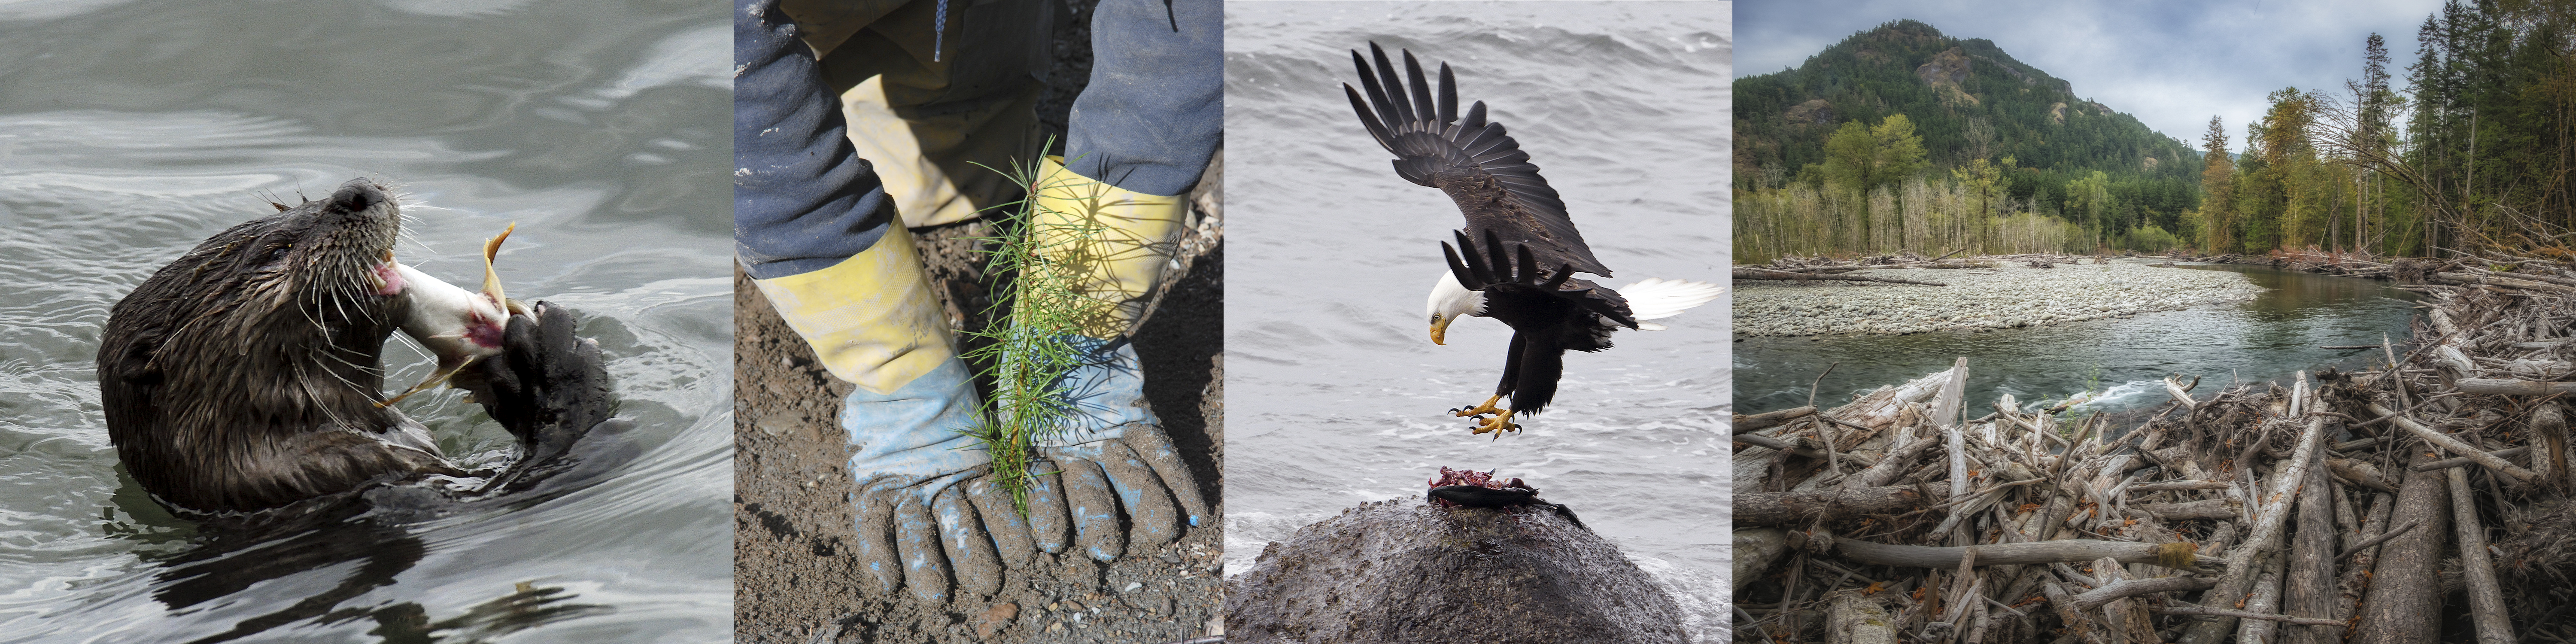 Otter eating a fish, planting of a Douglas Fir, bald eagle eating fish, scenic Elwha River.